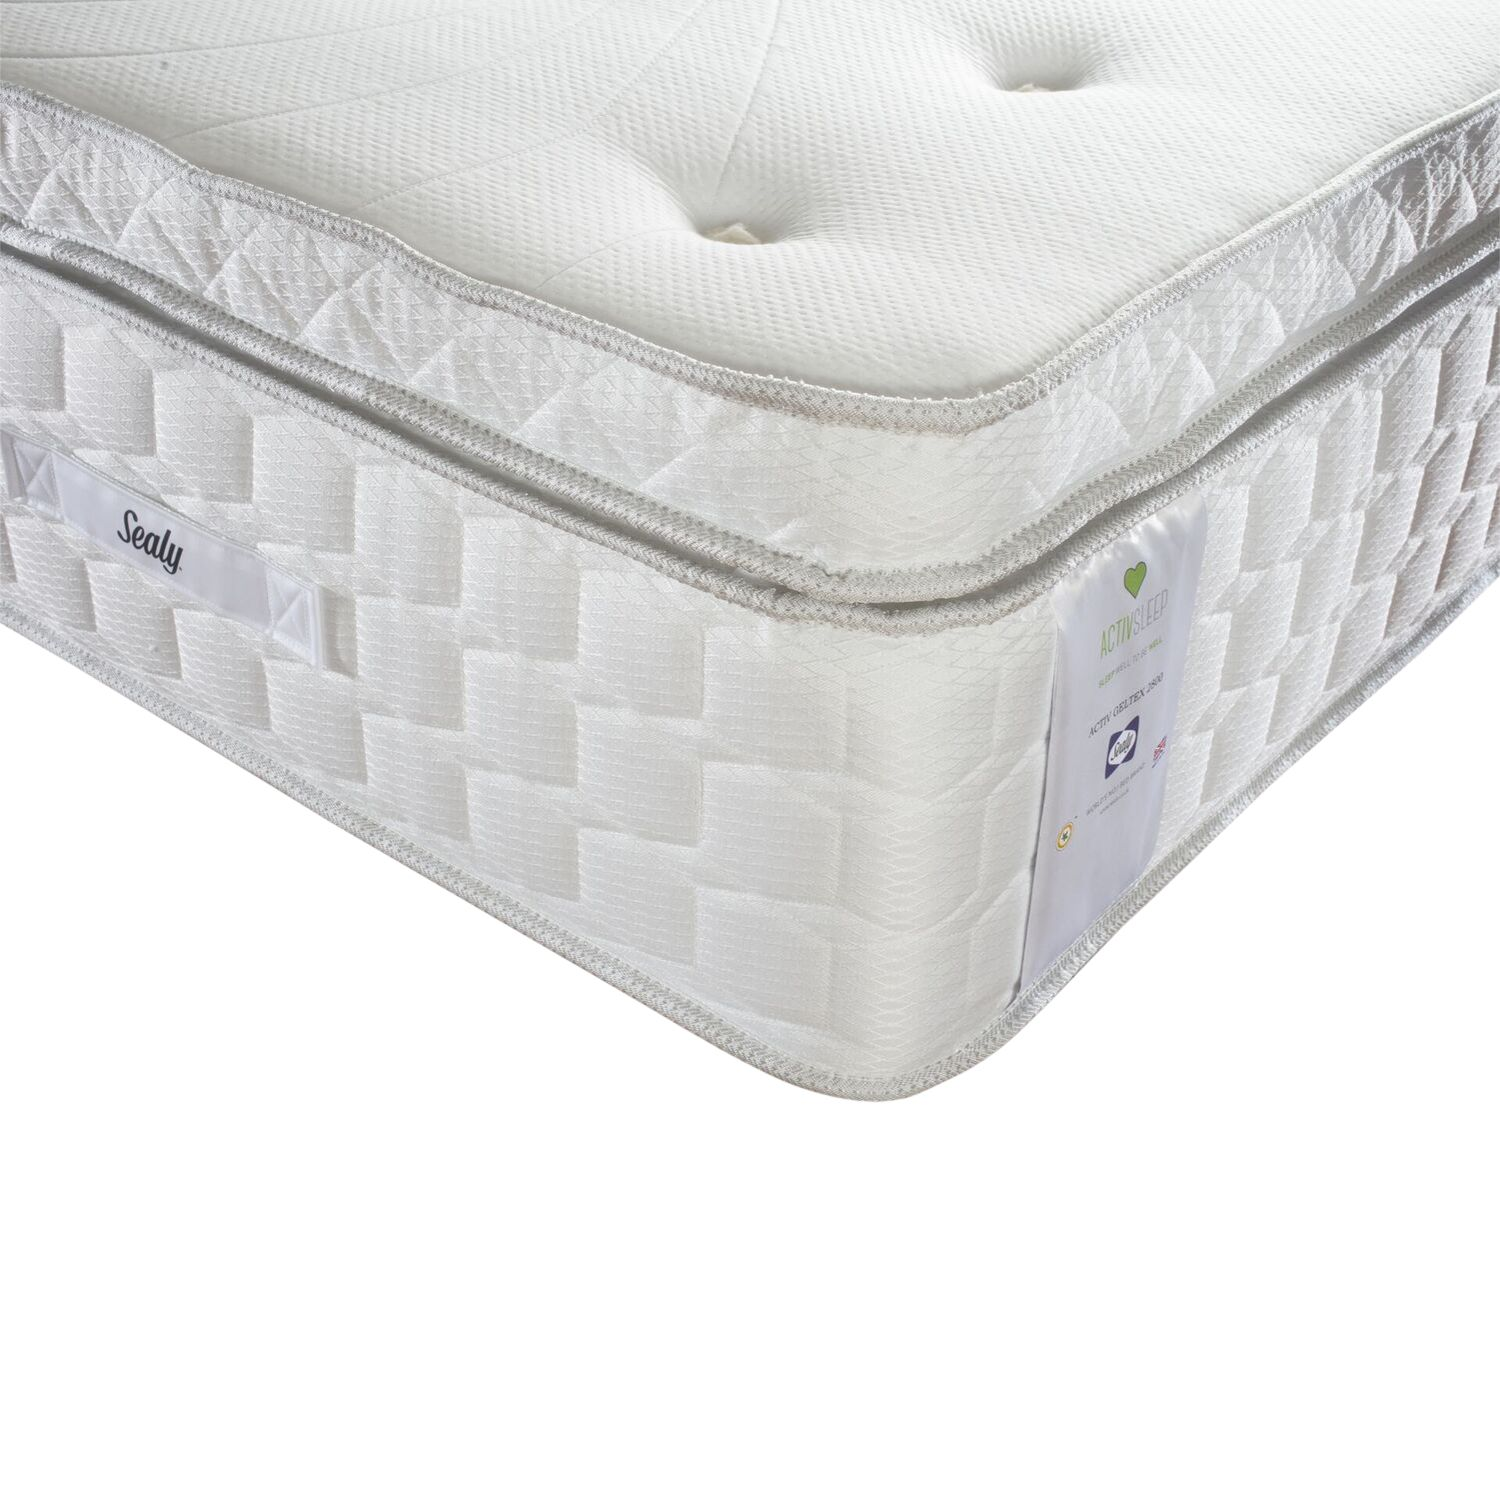 Sealy Sealy Activsleep Geltex 2800 Box Top Pocket Spring, Medium, Single